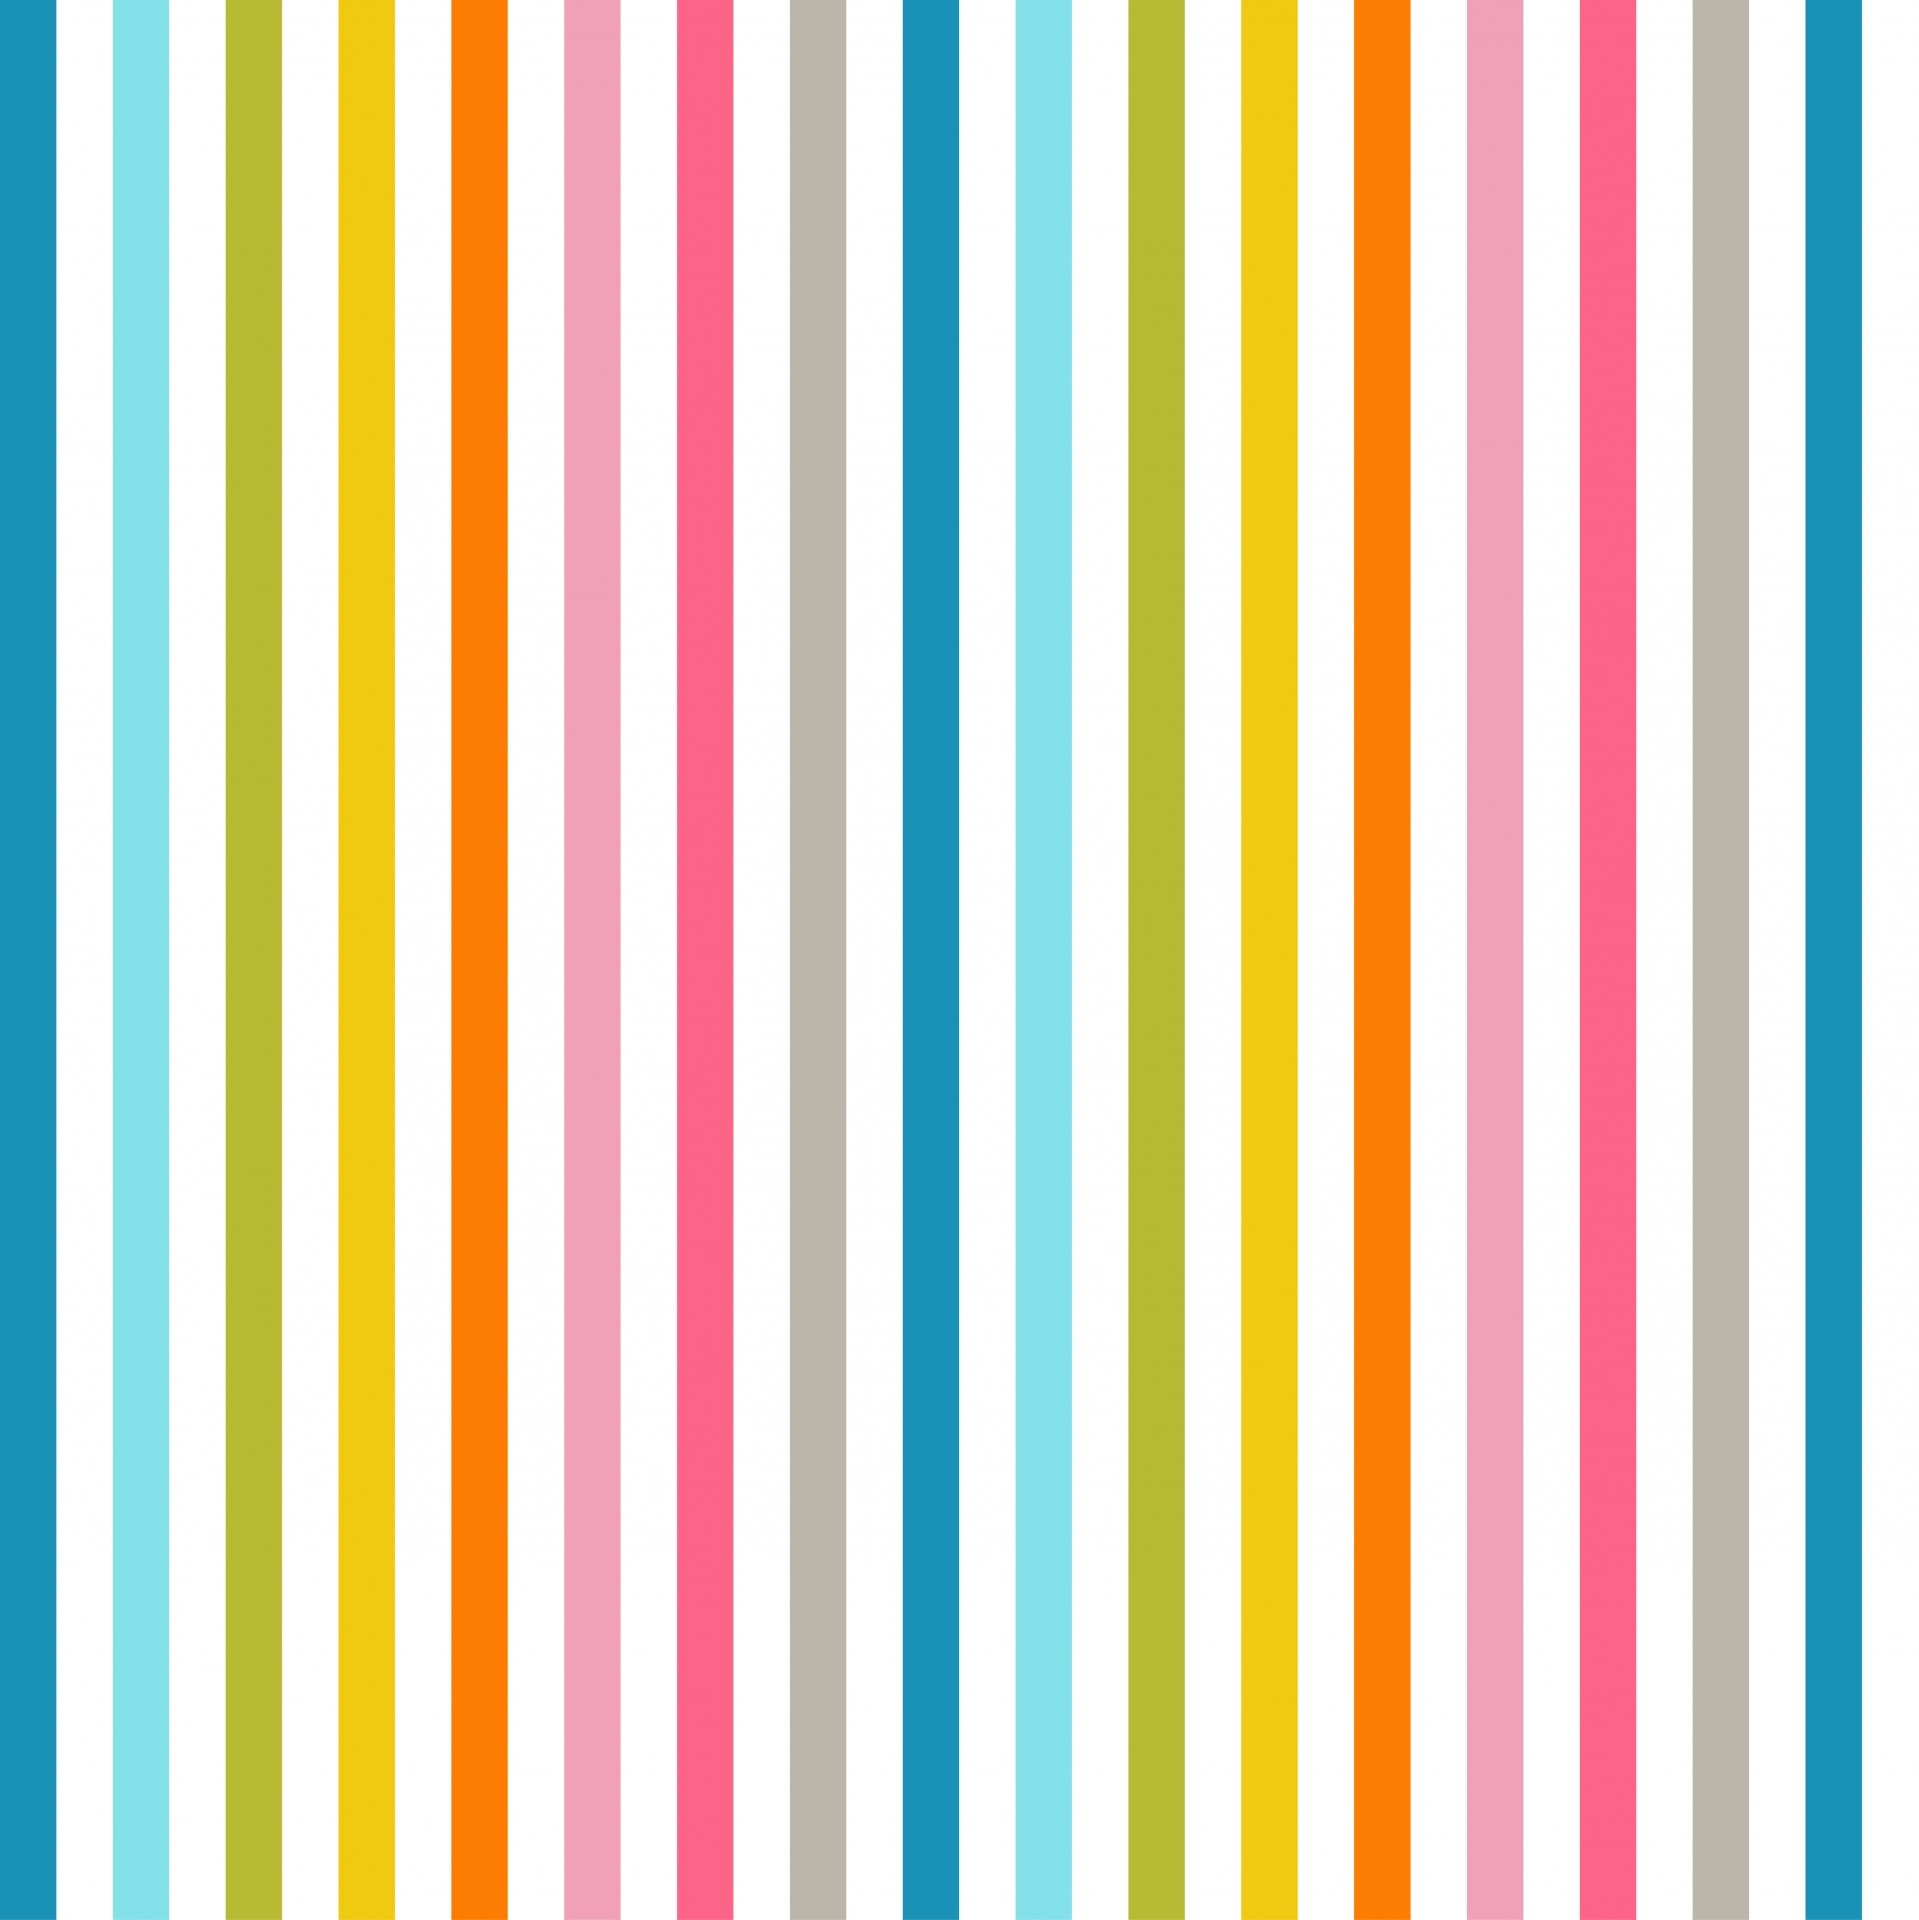 1919x1920 Stripes Background Colorful